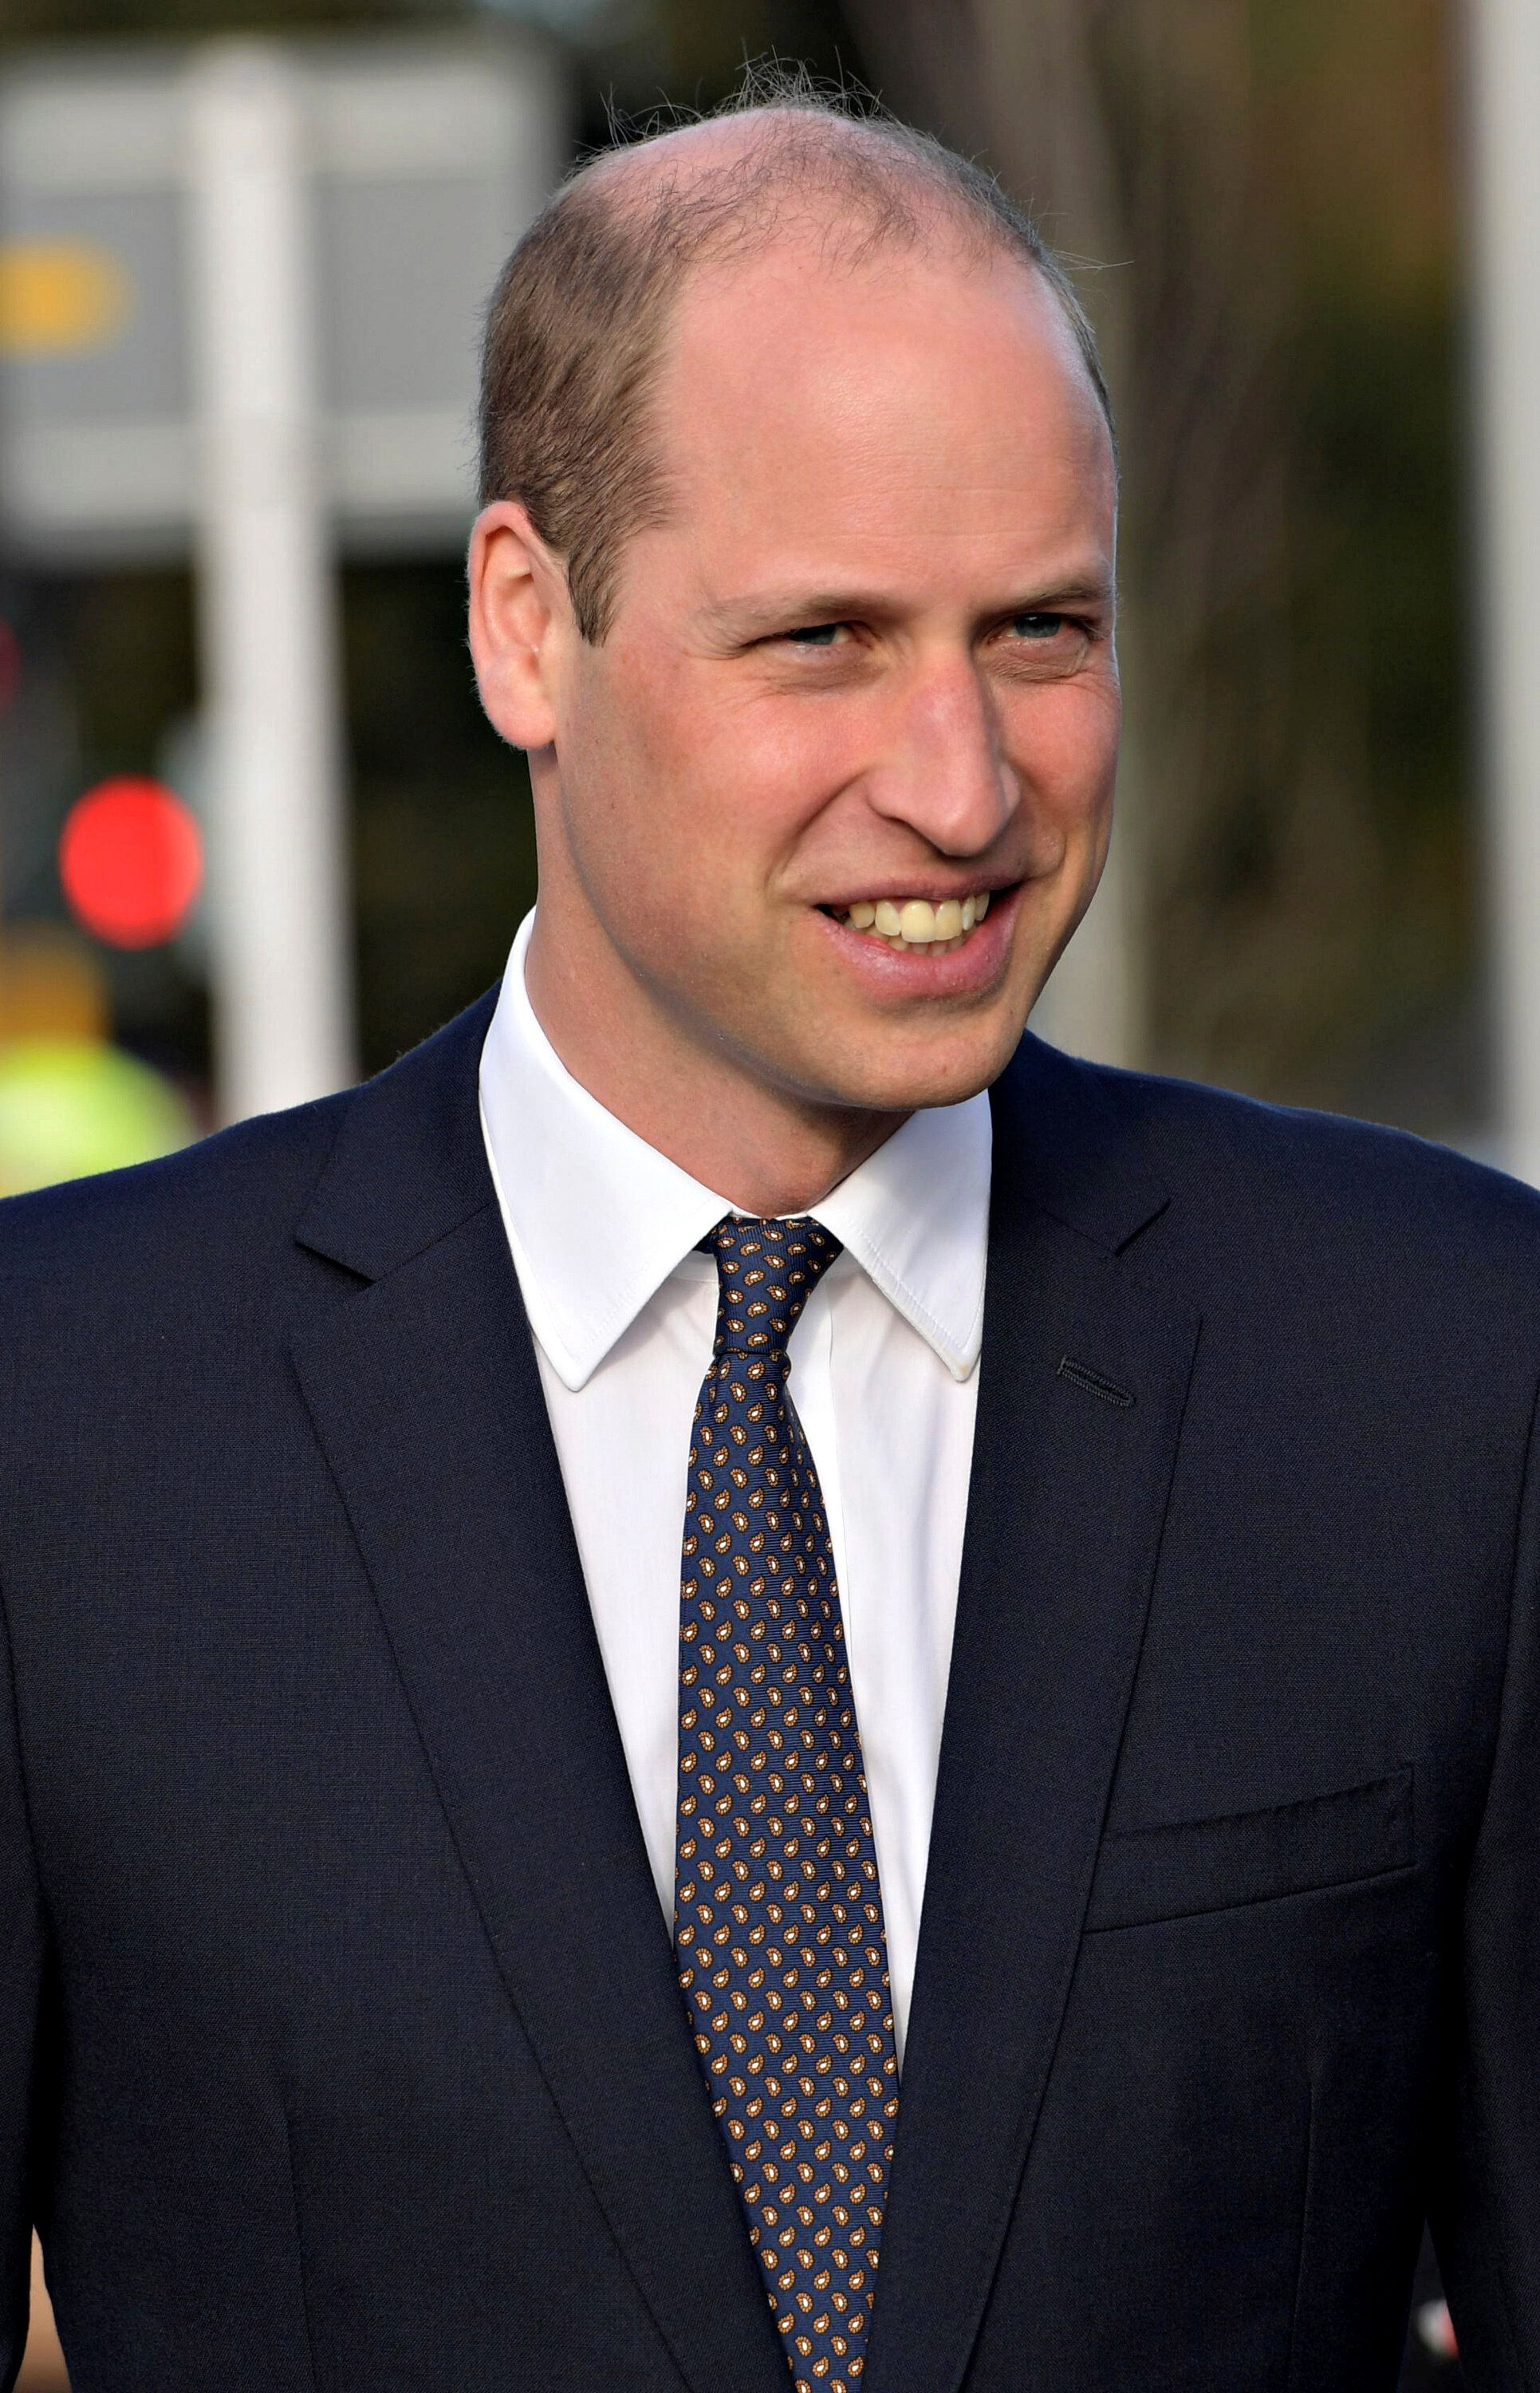 Prince William Welcomes Harry Into The 'Sleep Deprivation Society' Of